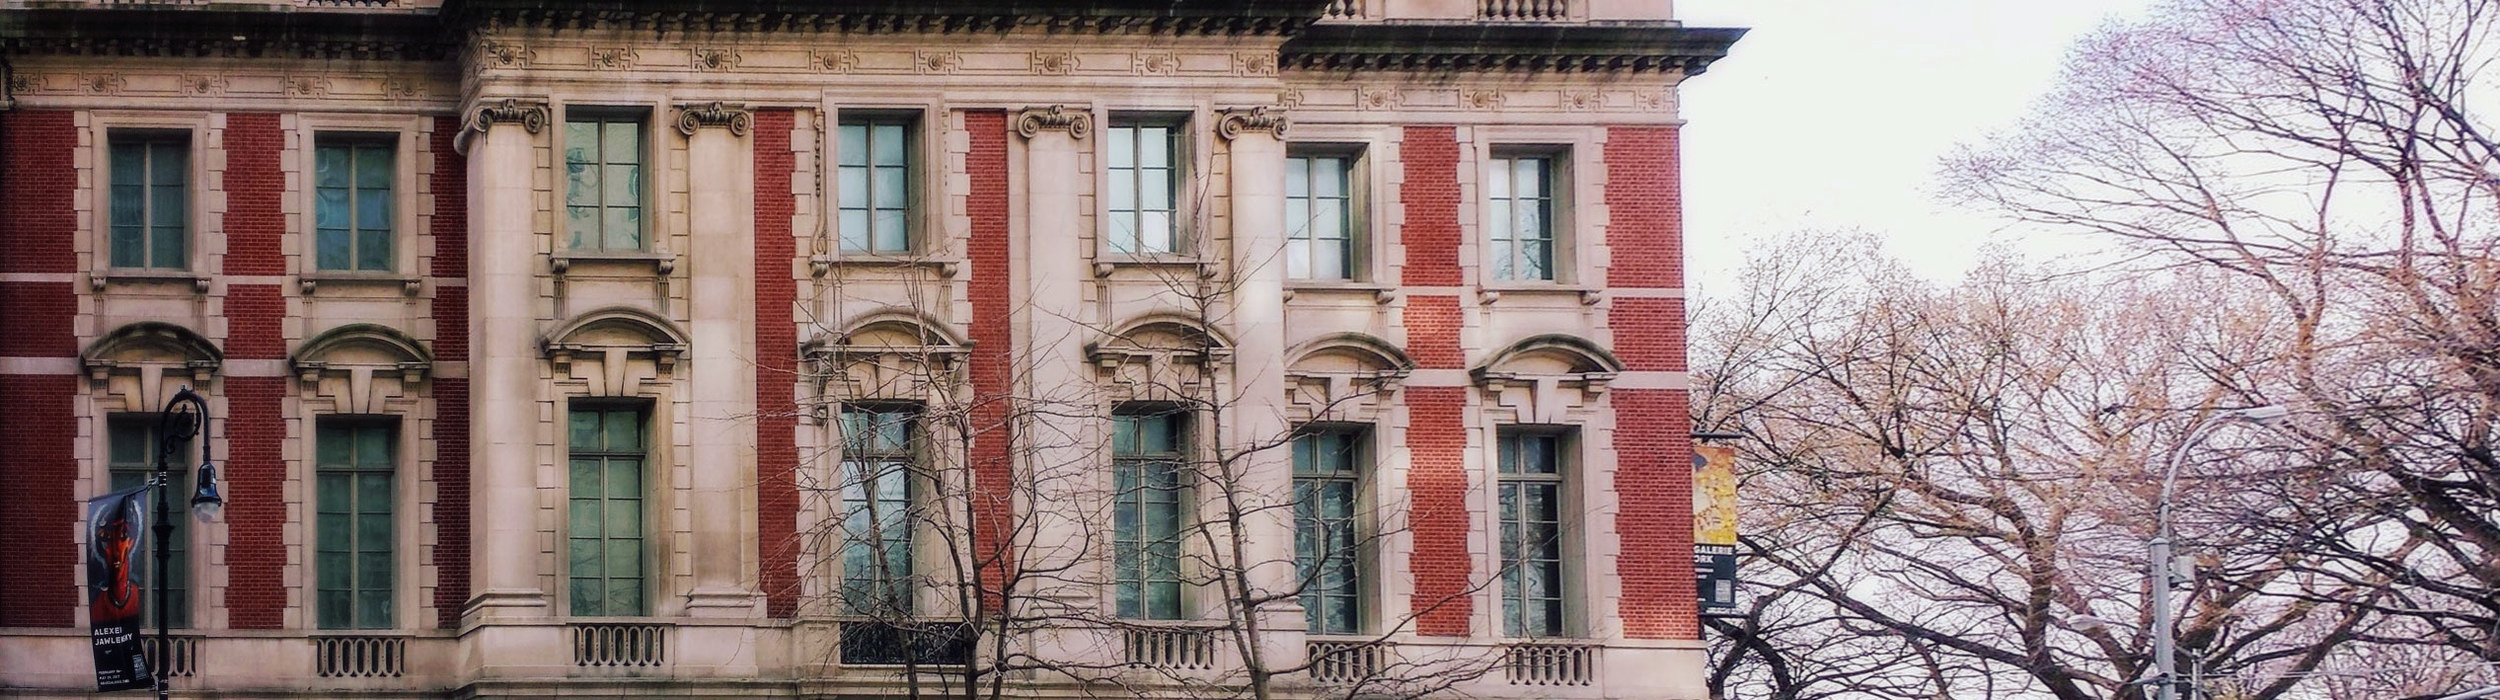 Neue Galerie, East 86th Street and Fifth Avenue